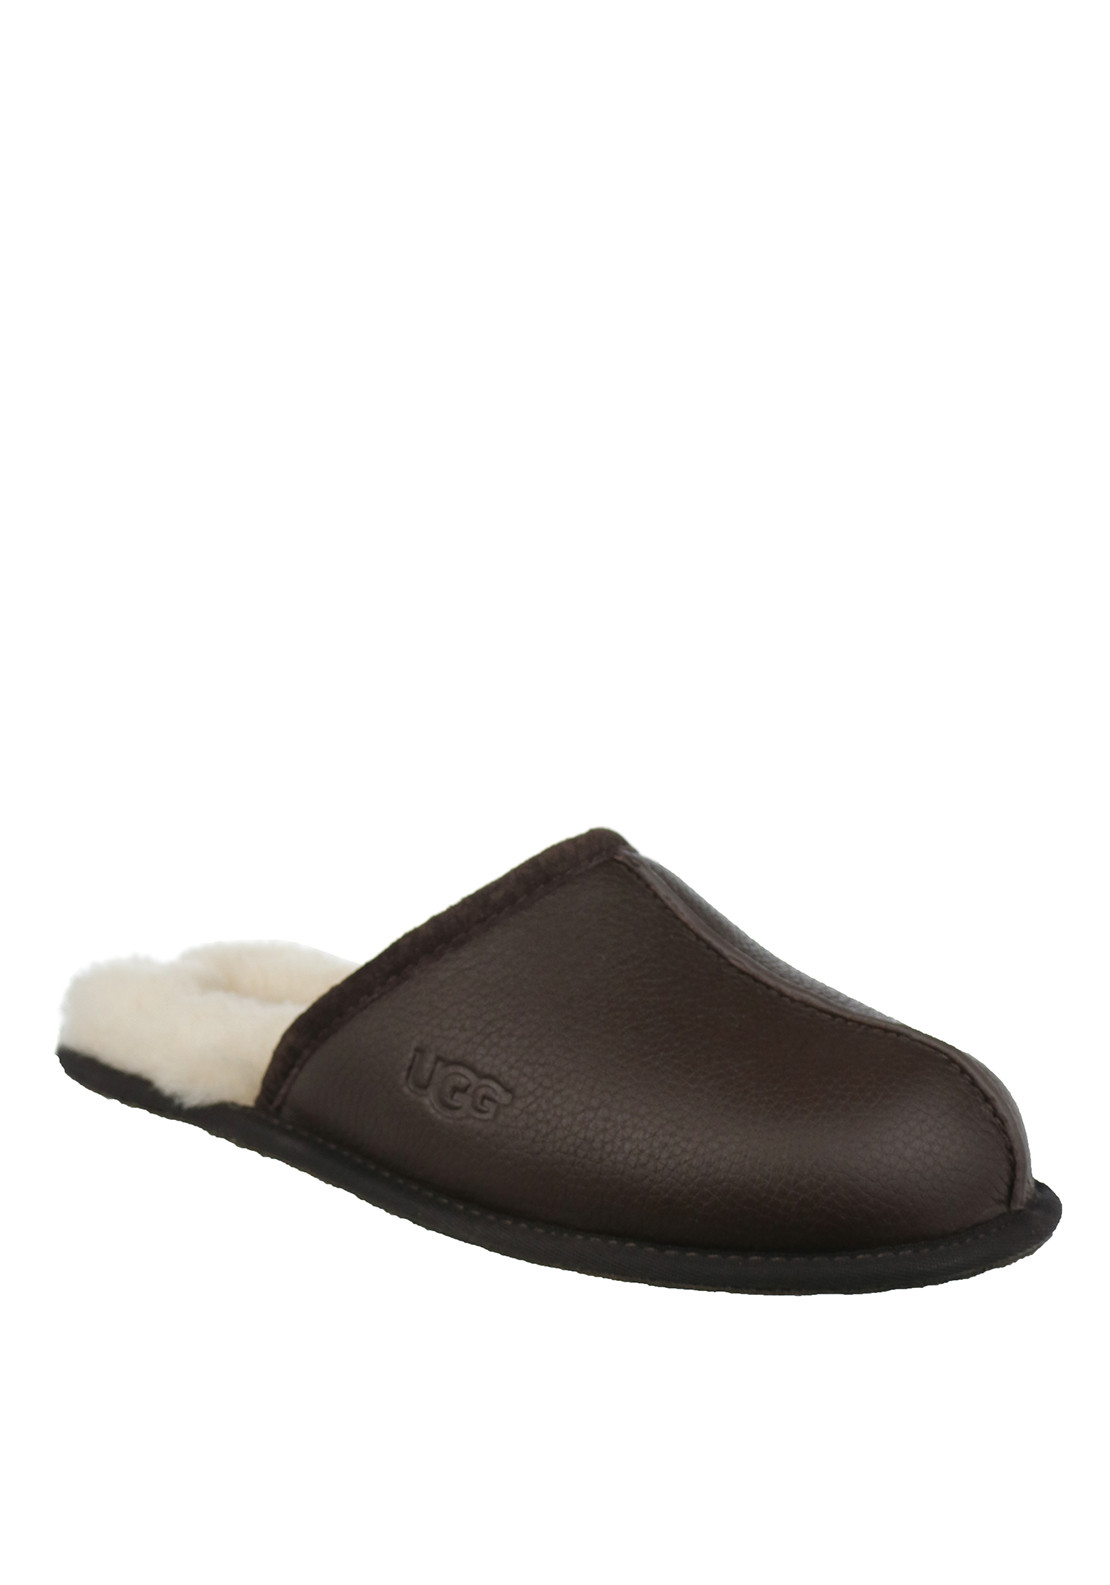 Ugg Australia Mens Scuff Leather Slippers, Stout Brown